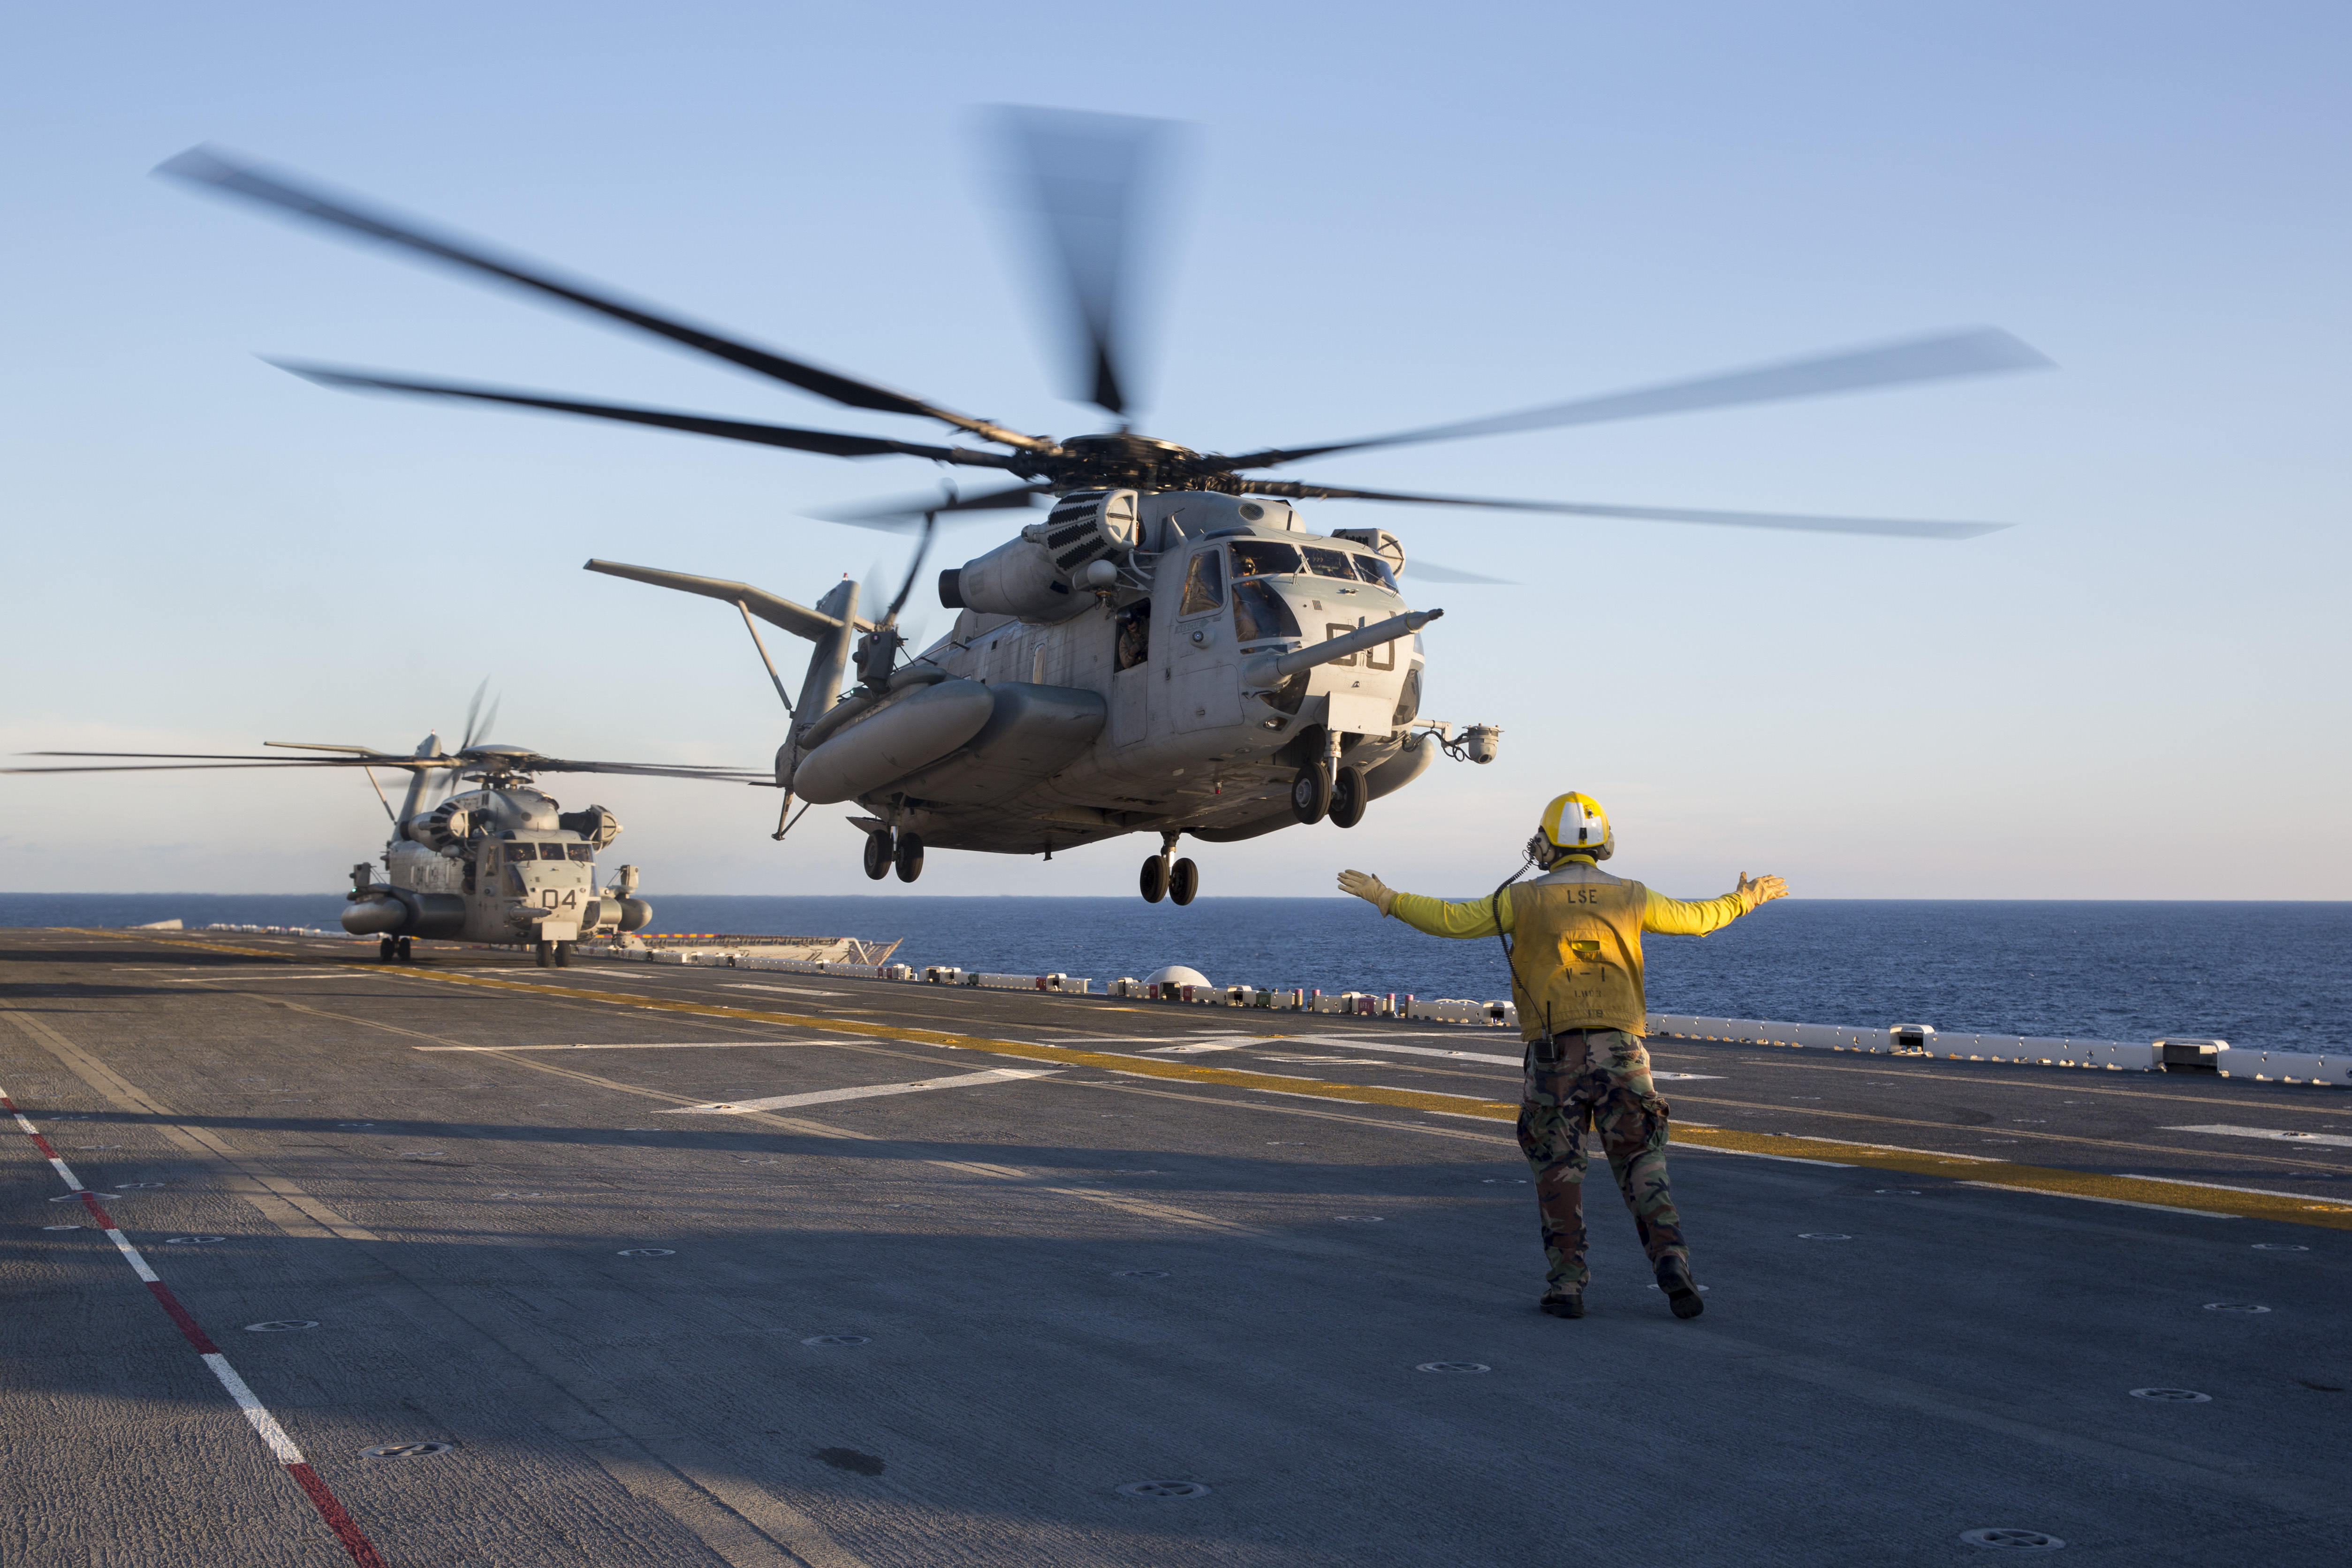 File:A U.S. Sailor directs a Marine Corps CH-53E Super Stallion helicopter to